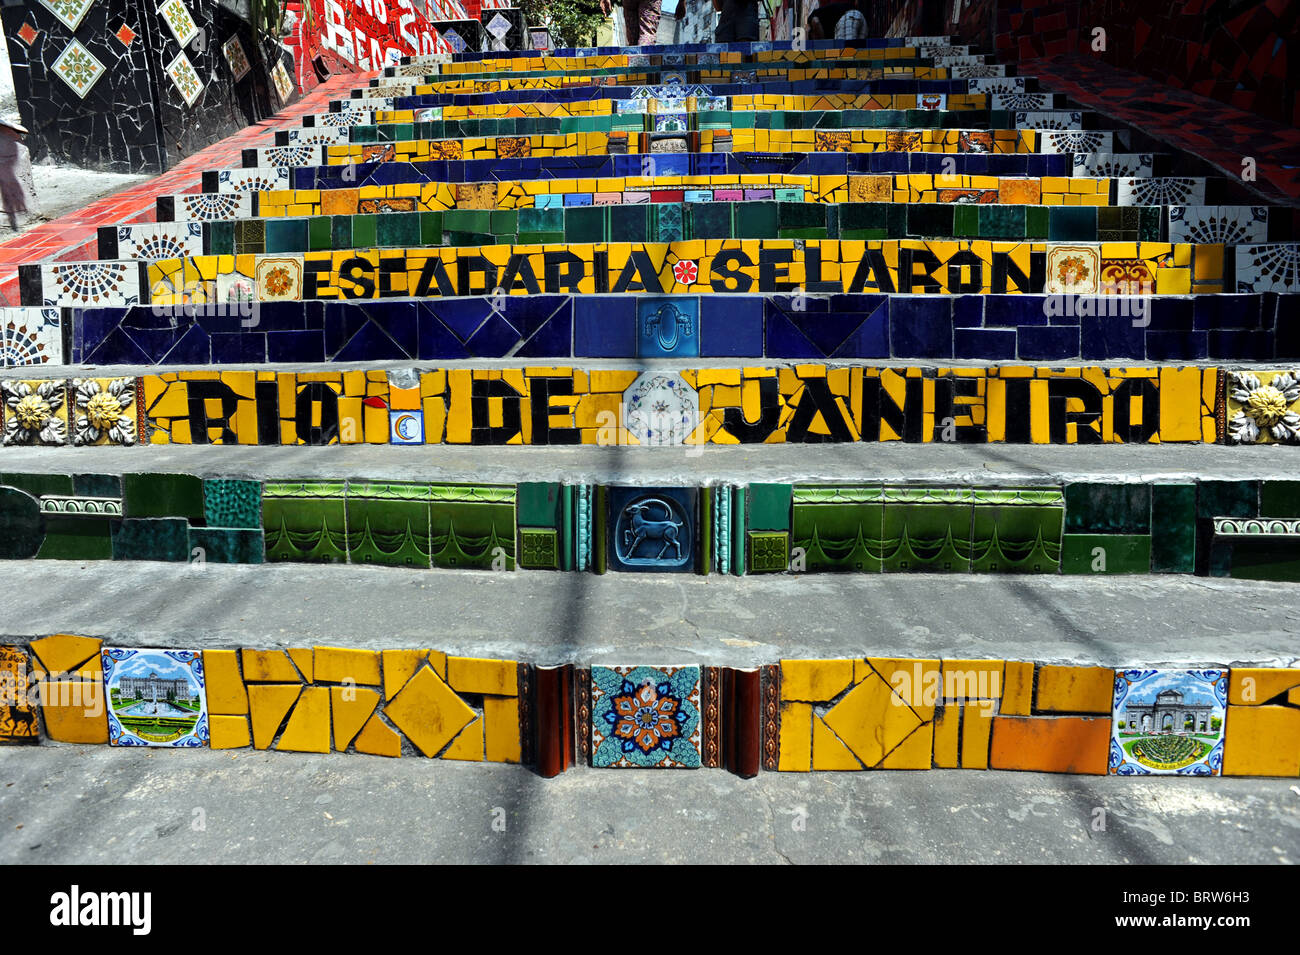 Escadaria Selarón the set of world-famous stairs in Santa Teresa/ Lapa area of Rio and is the work of artist - Stock Image